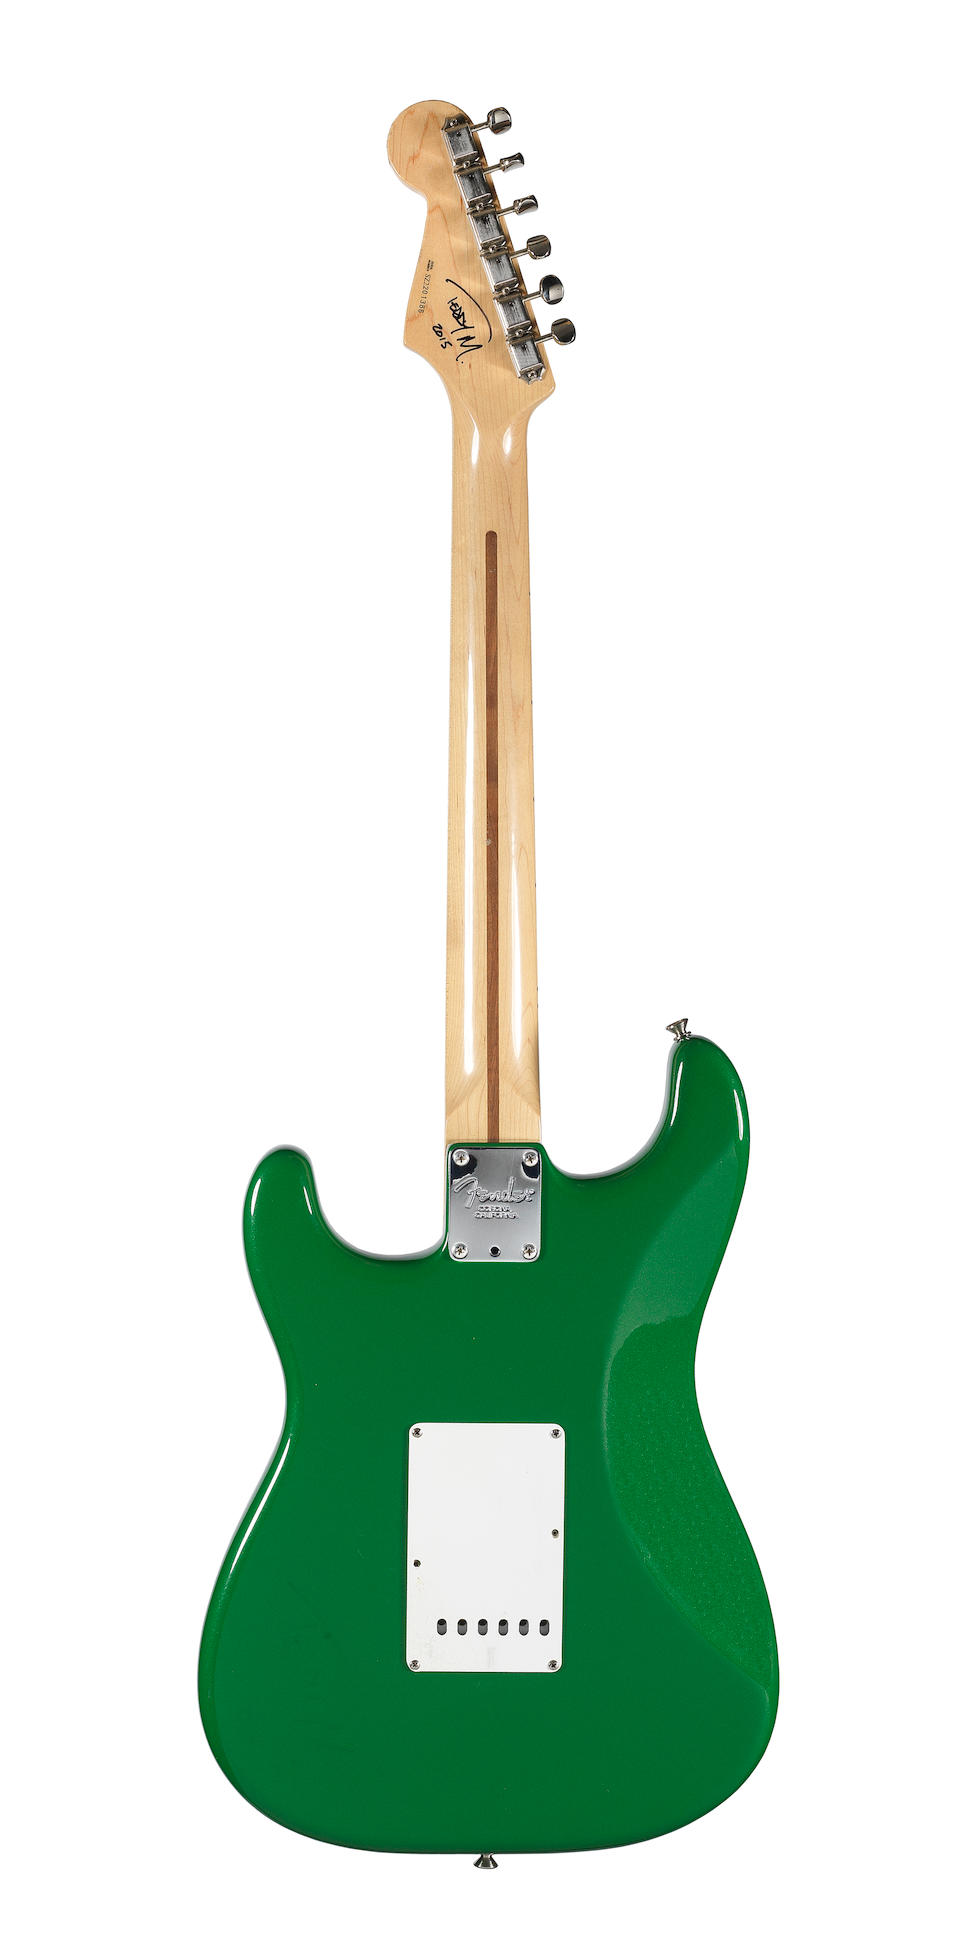 Ed Sheeran:  'Green T' Fender Stratocaster Eric Clapton Signature Model guitar used by Ed Sheeran on his X world tour 2015, Serial No. SZ2201386,